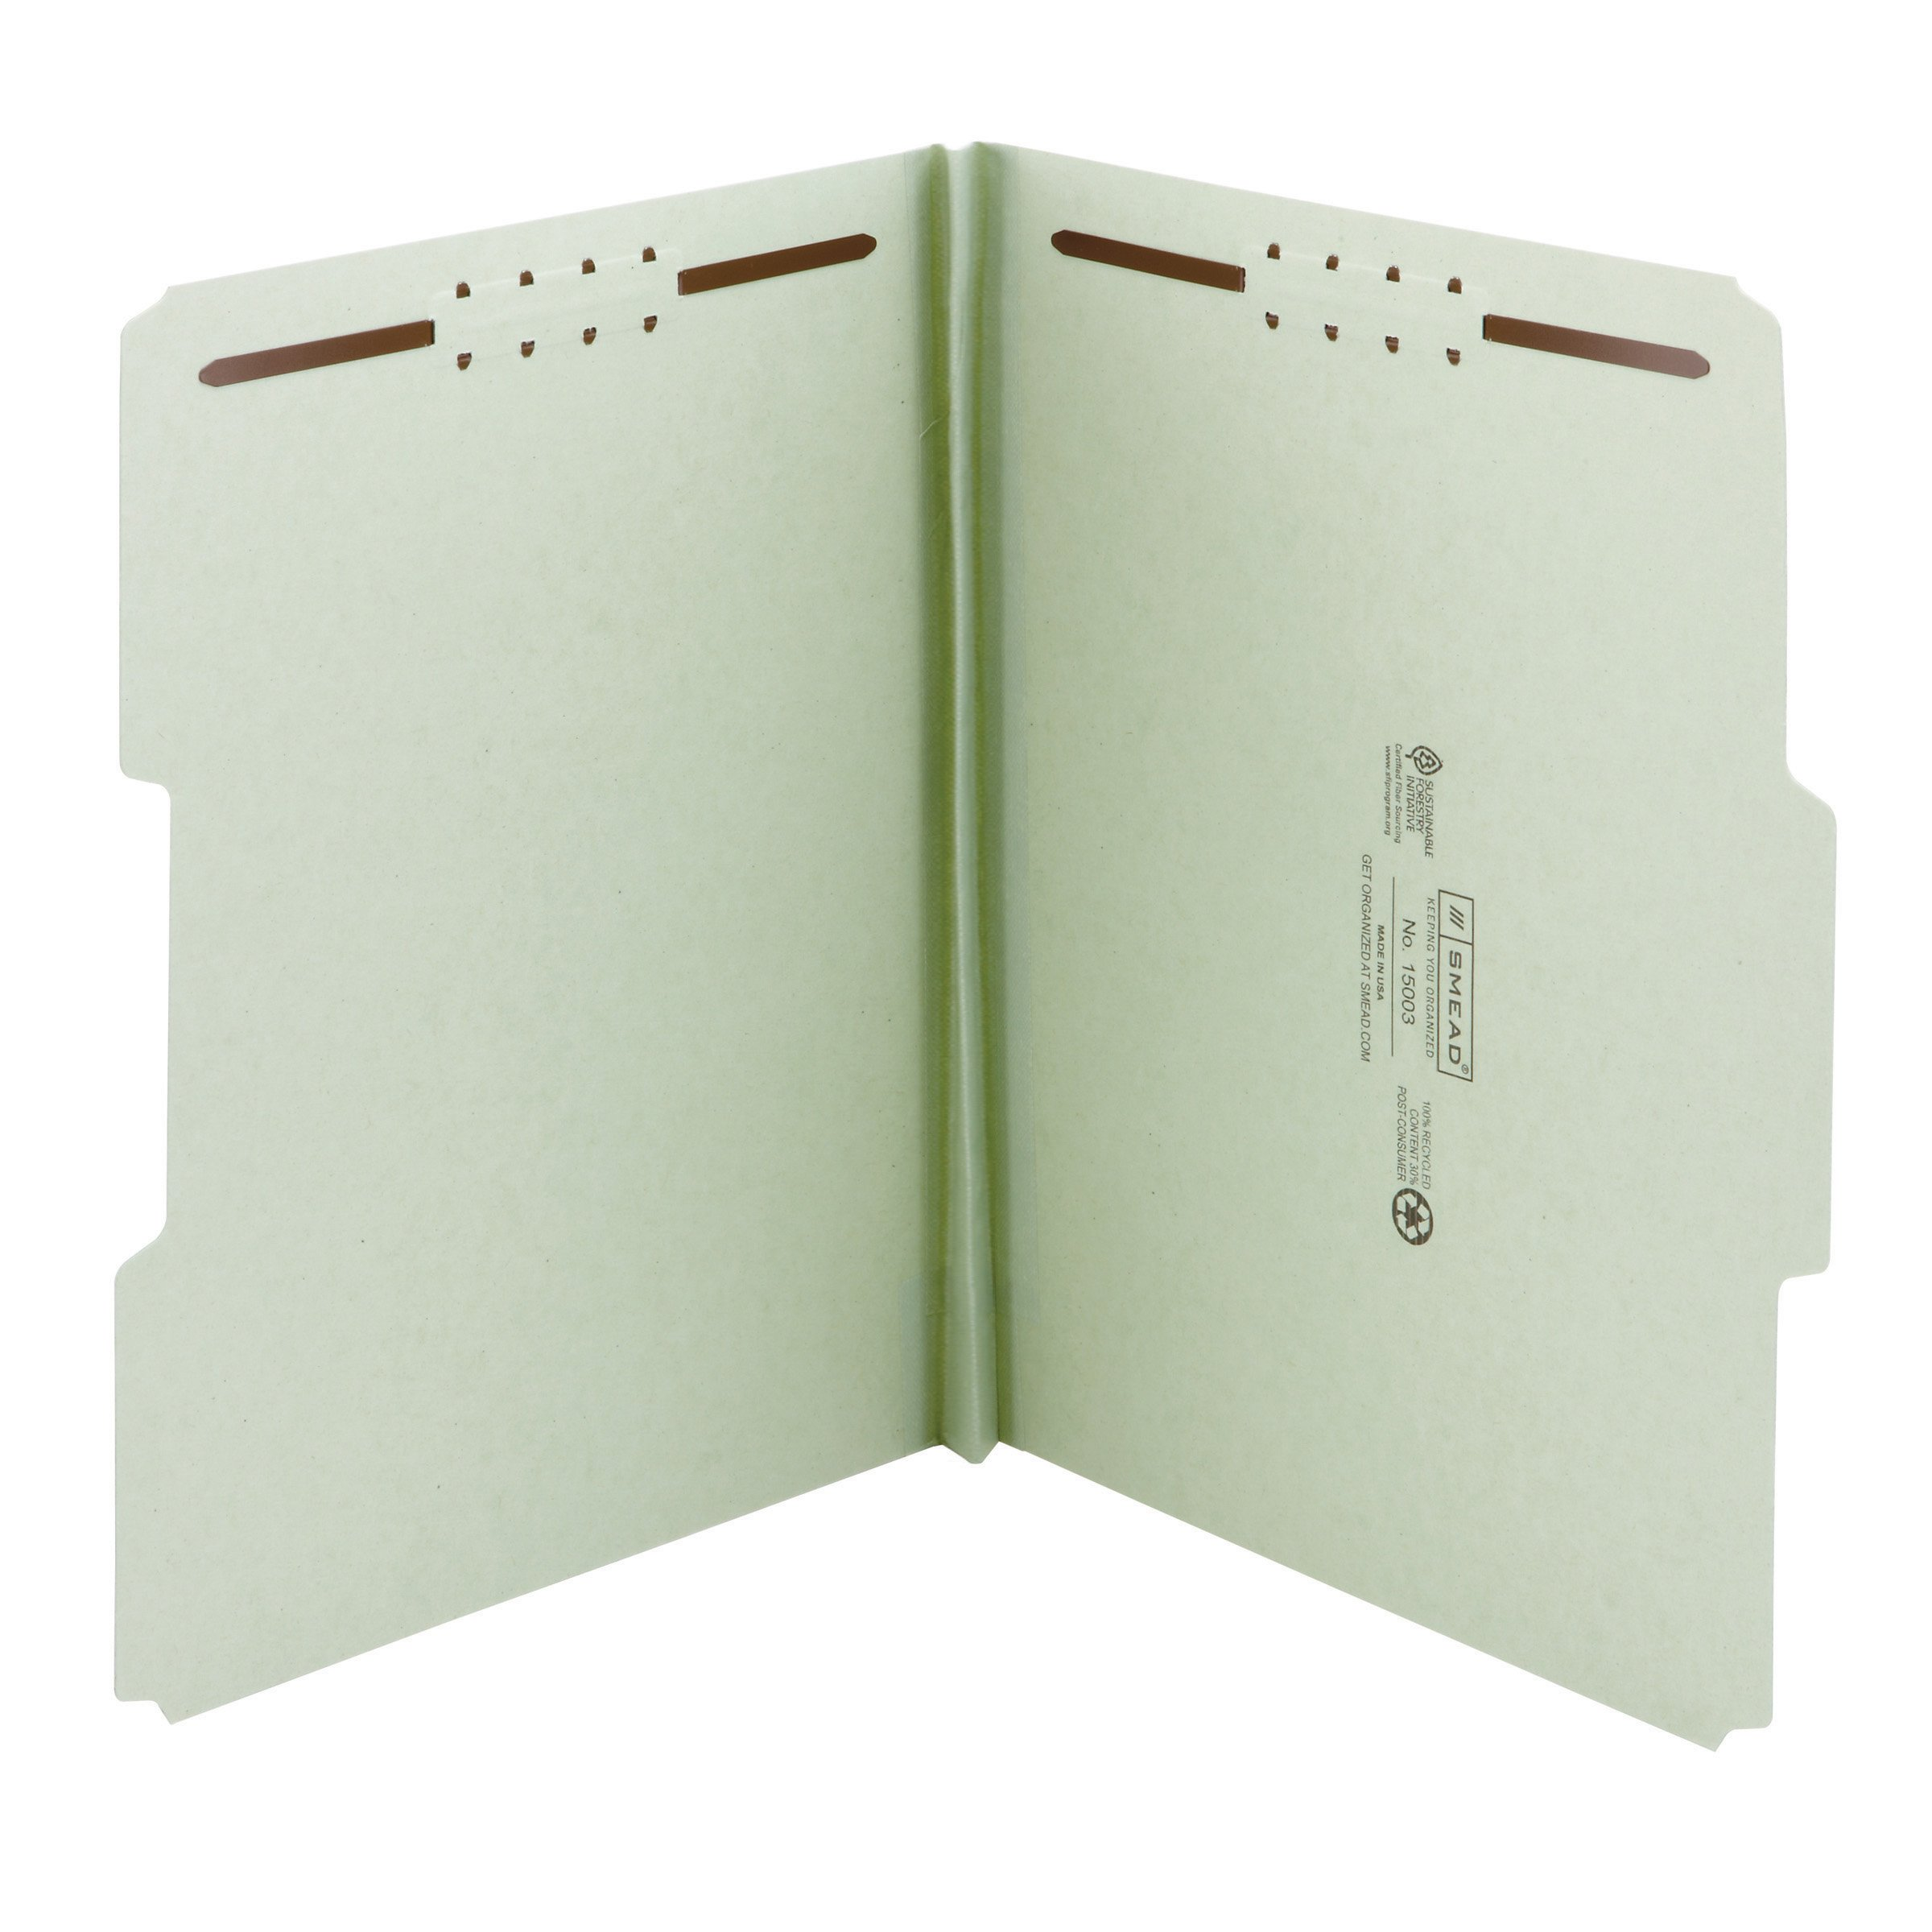 Smead 100% Recycled Pressboard Fastener File Folder, 2 Fasteners, 1/3-Cut Tab, 1'' Expansion, Letter Size, Gray/Green, 25 per Box (15003)